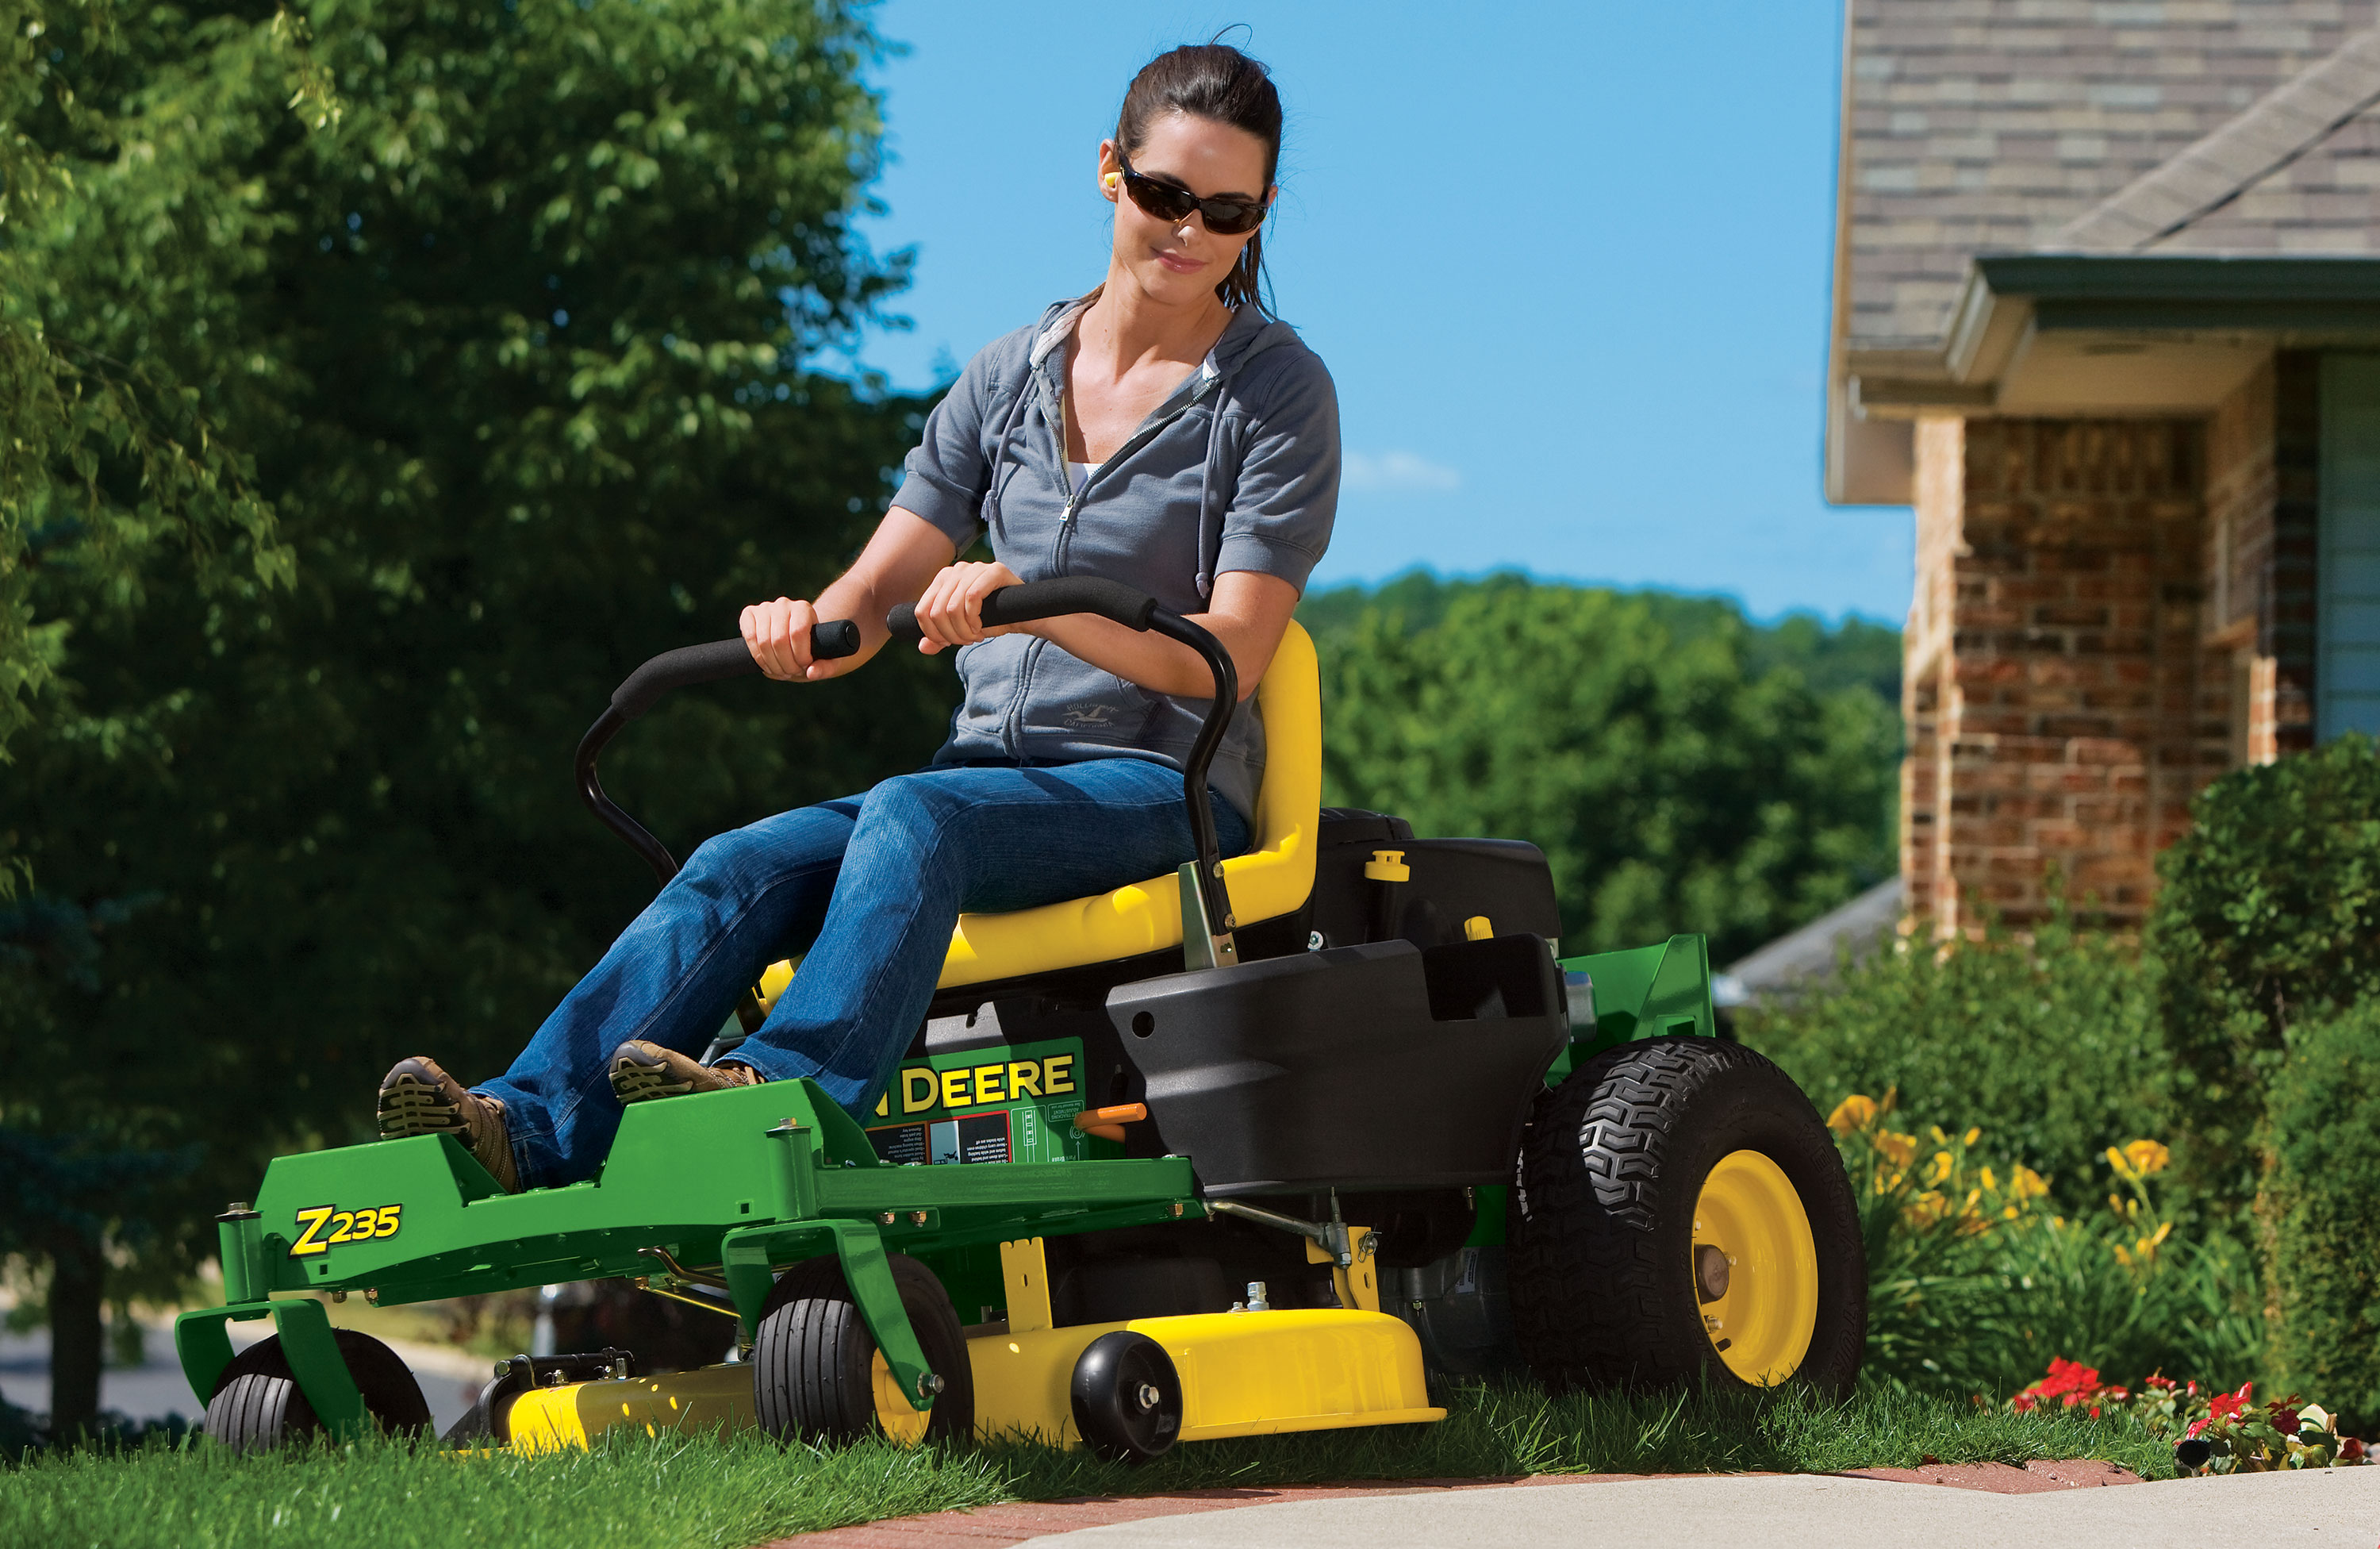 Spotlight on 2013 john deere lawn maintenance equipment for Garden maintenance tools